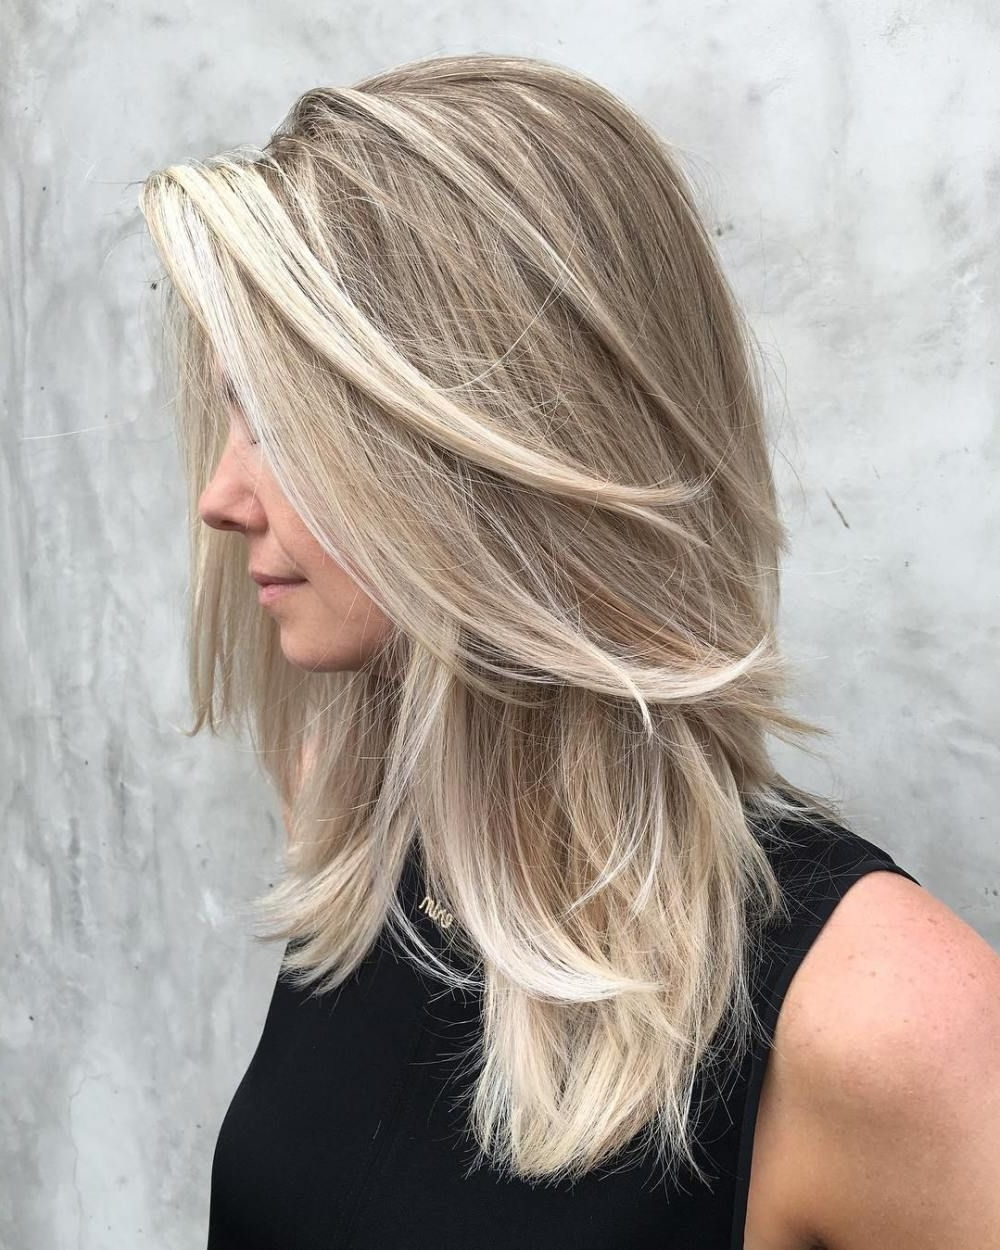 20 Beautiful Blonde Hairstyles To Play Around With (View 18 of 20)